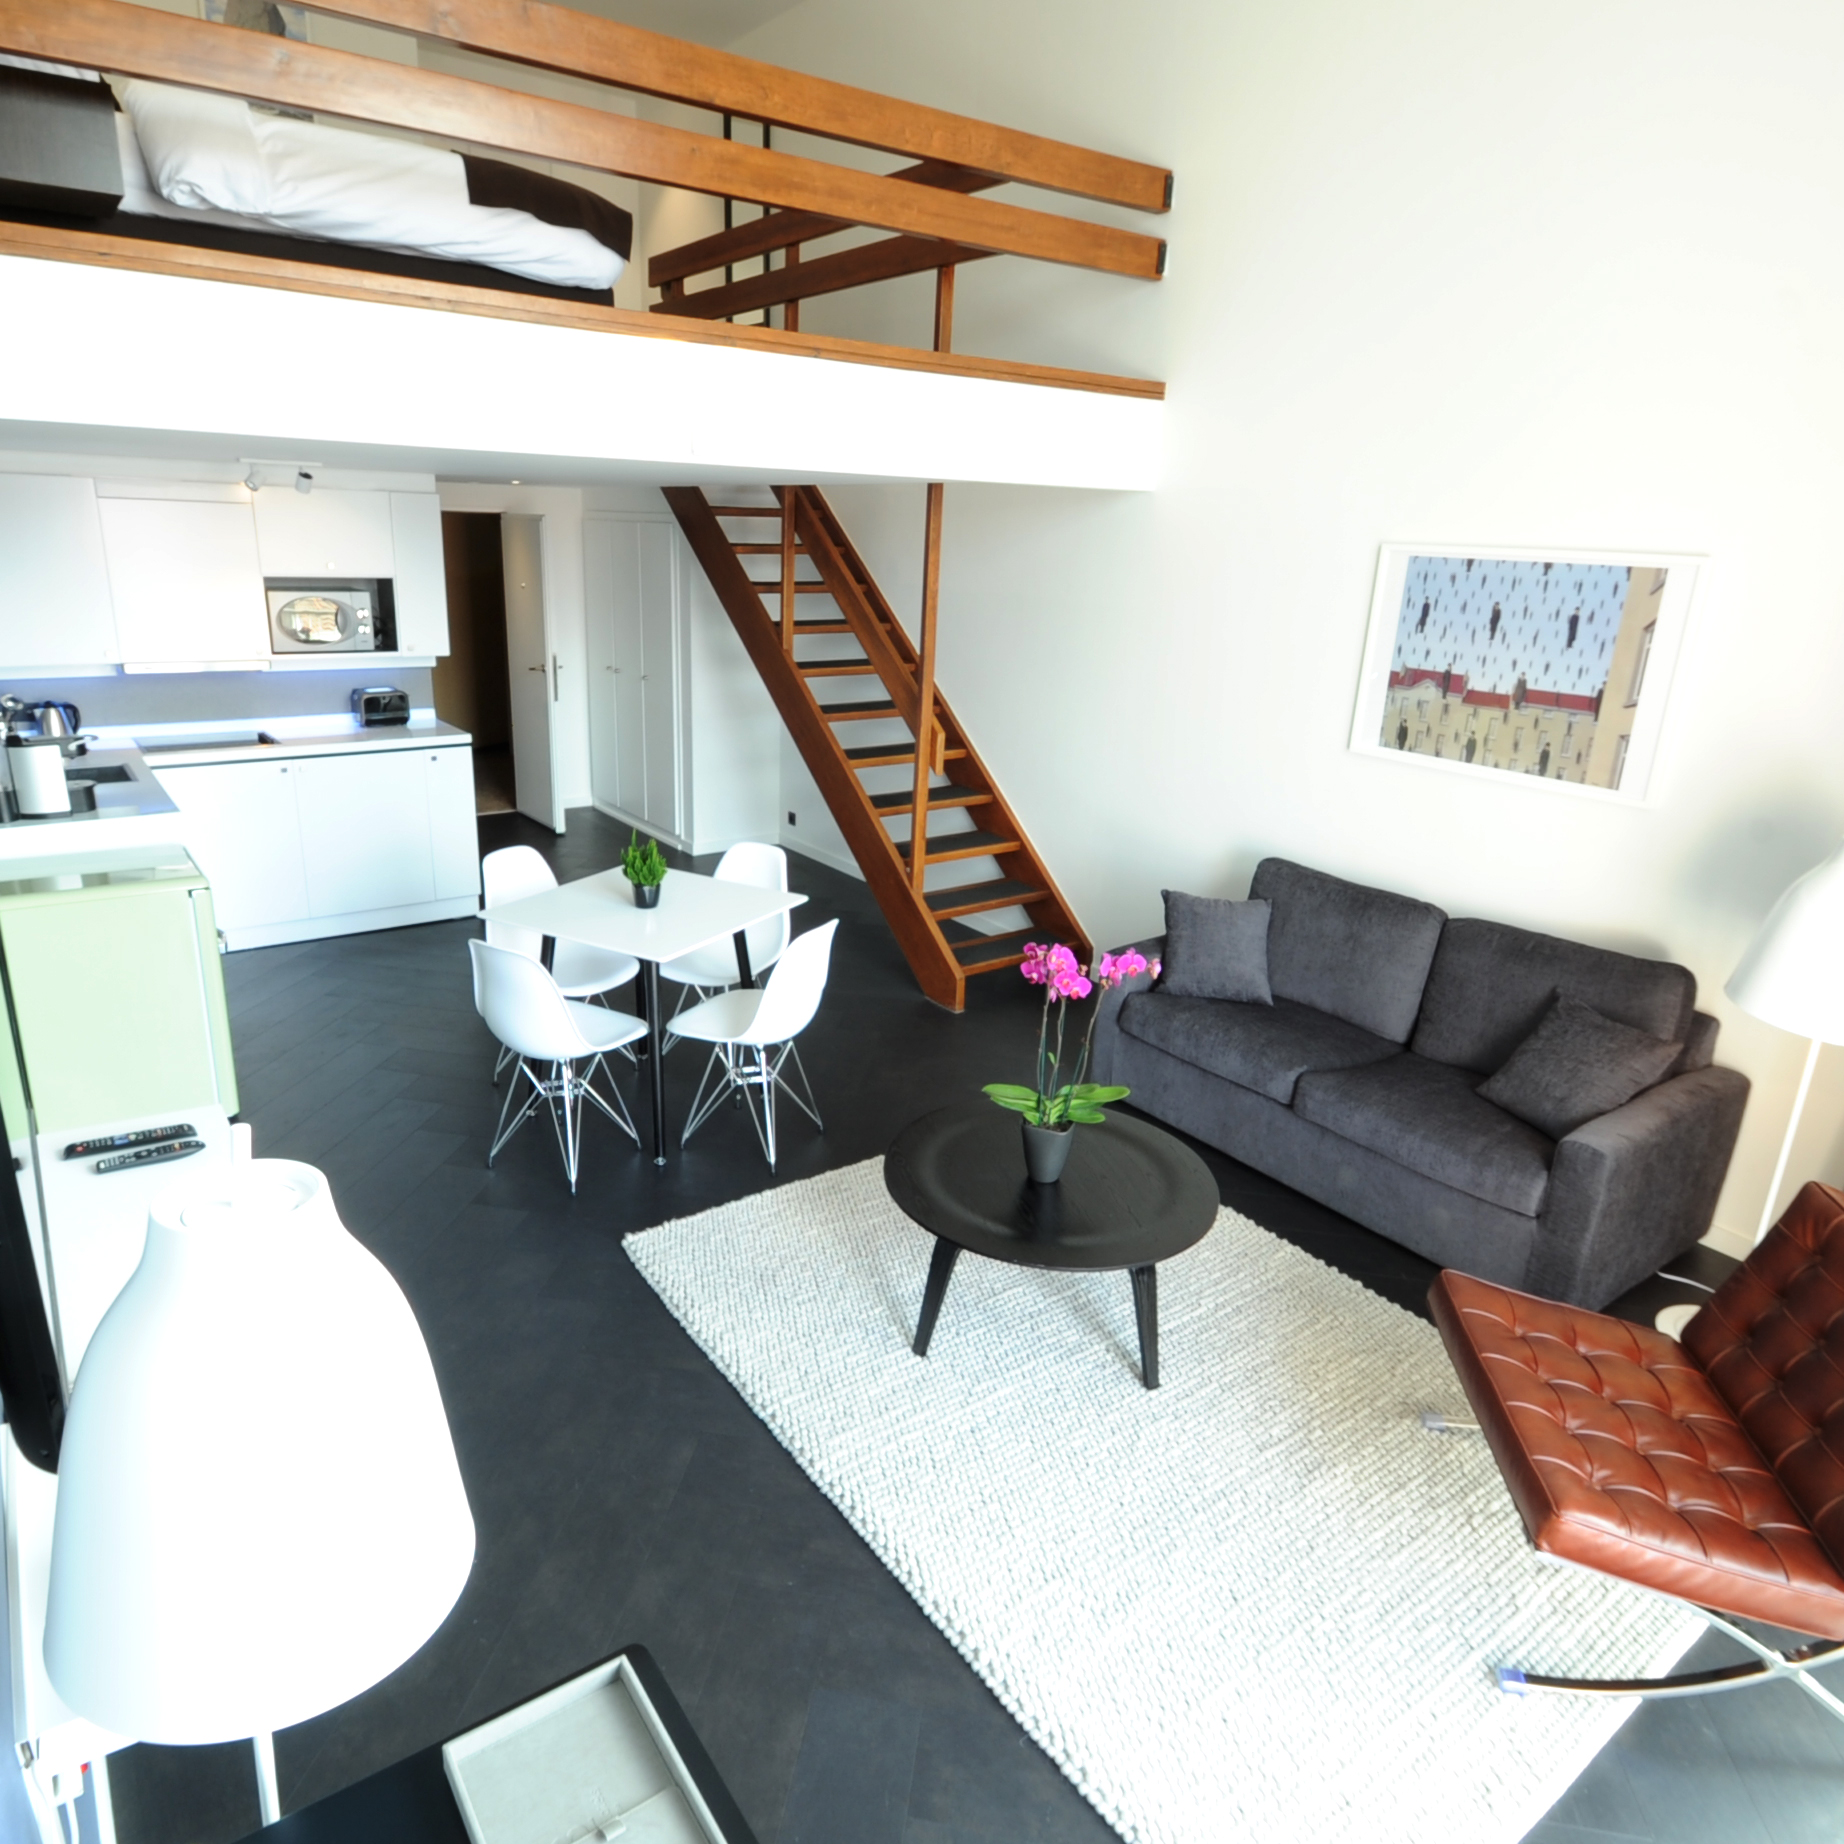 104/Montgomery/NEW ROOMS 7.jpg